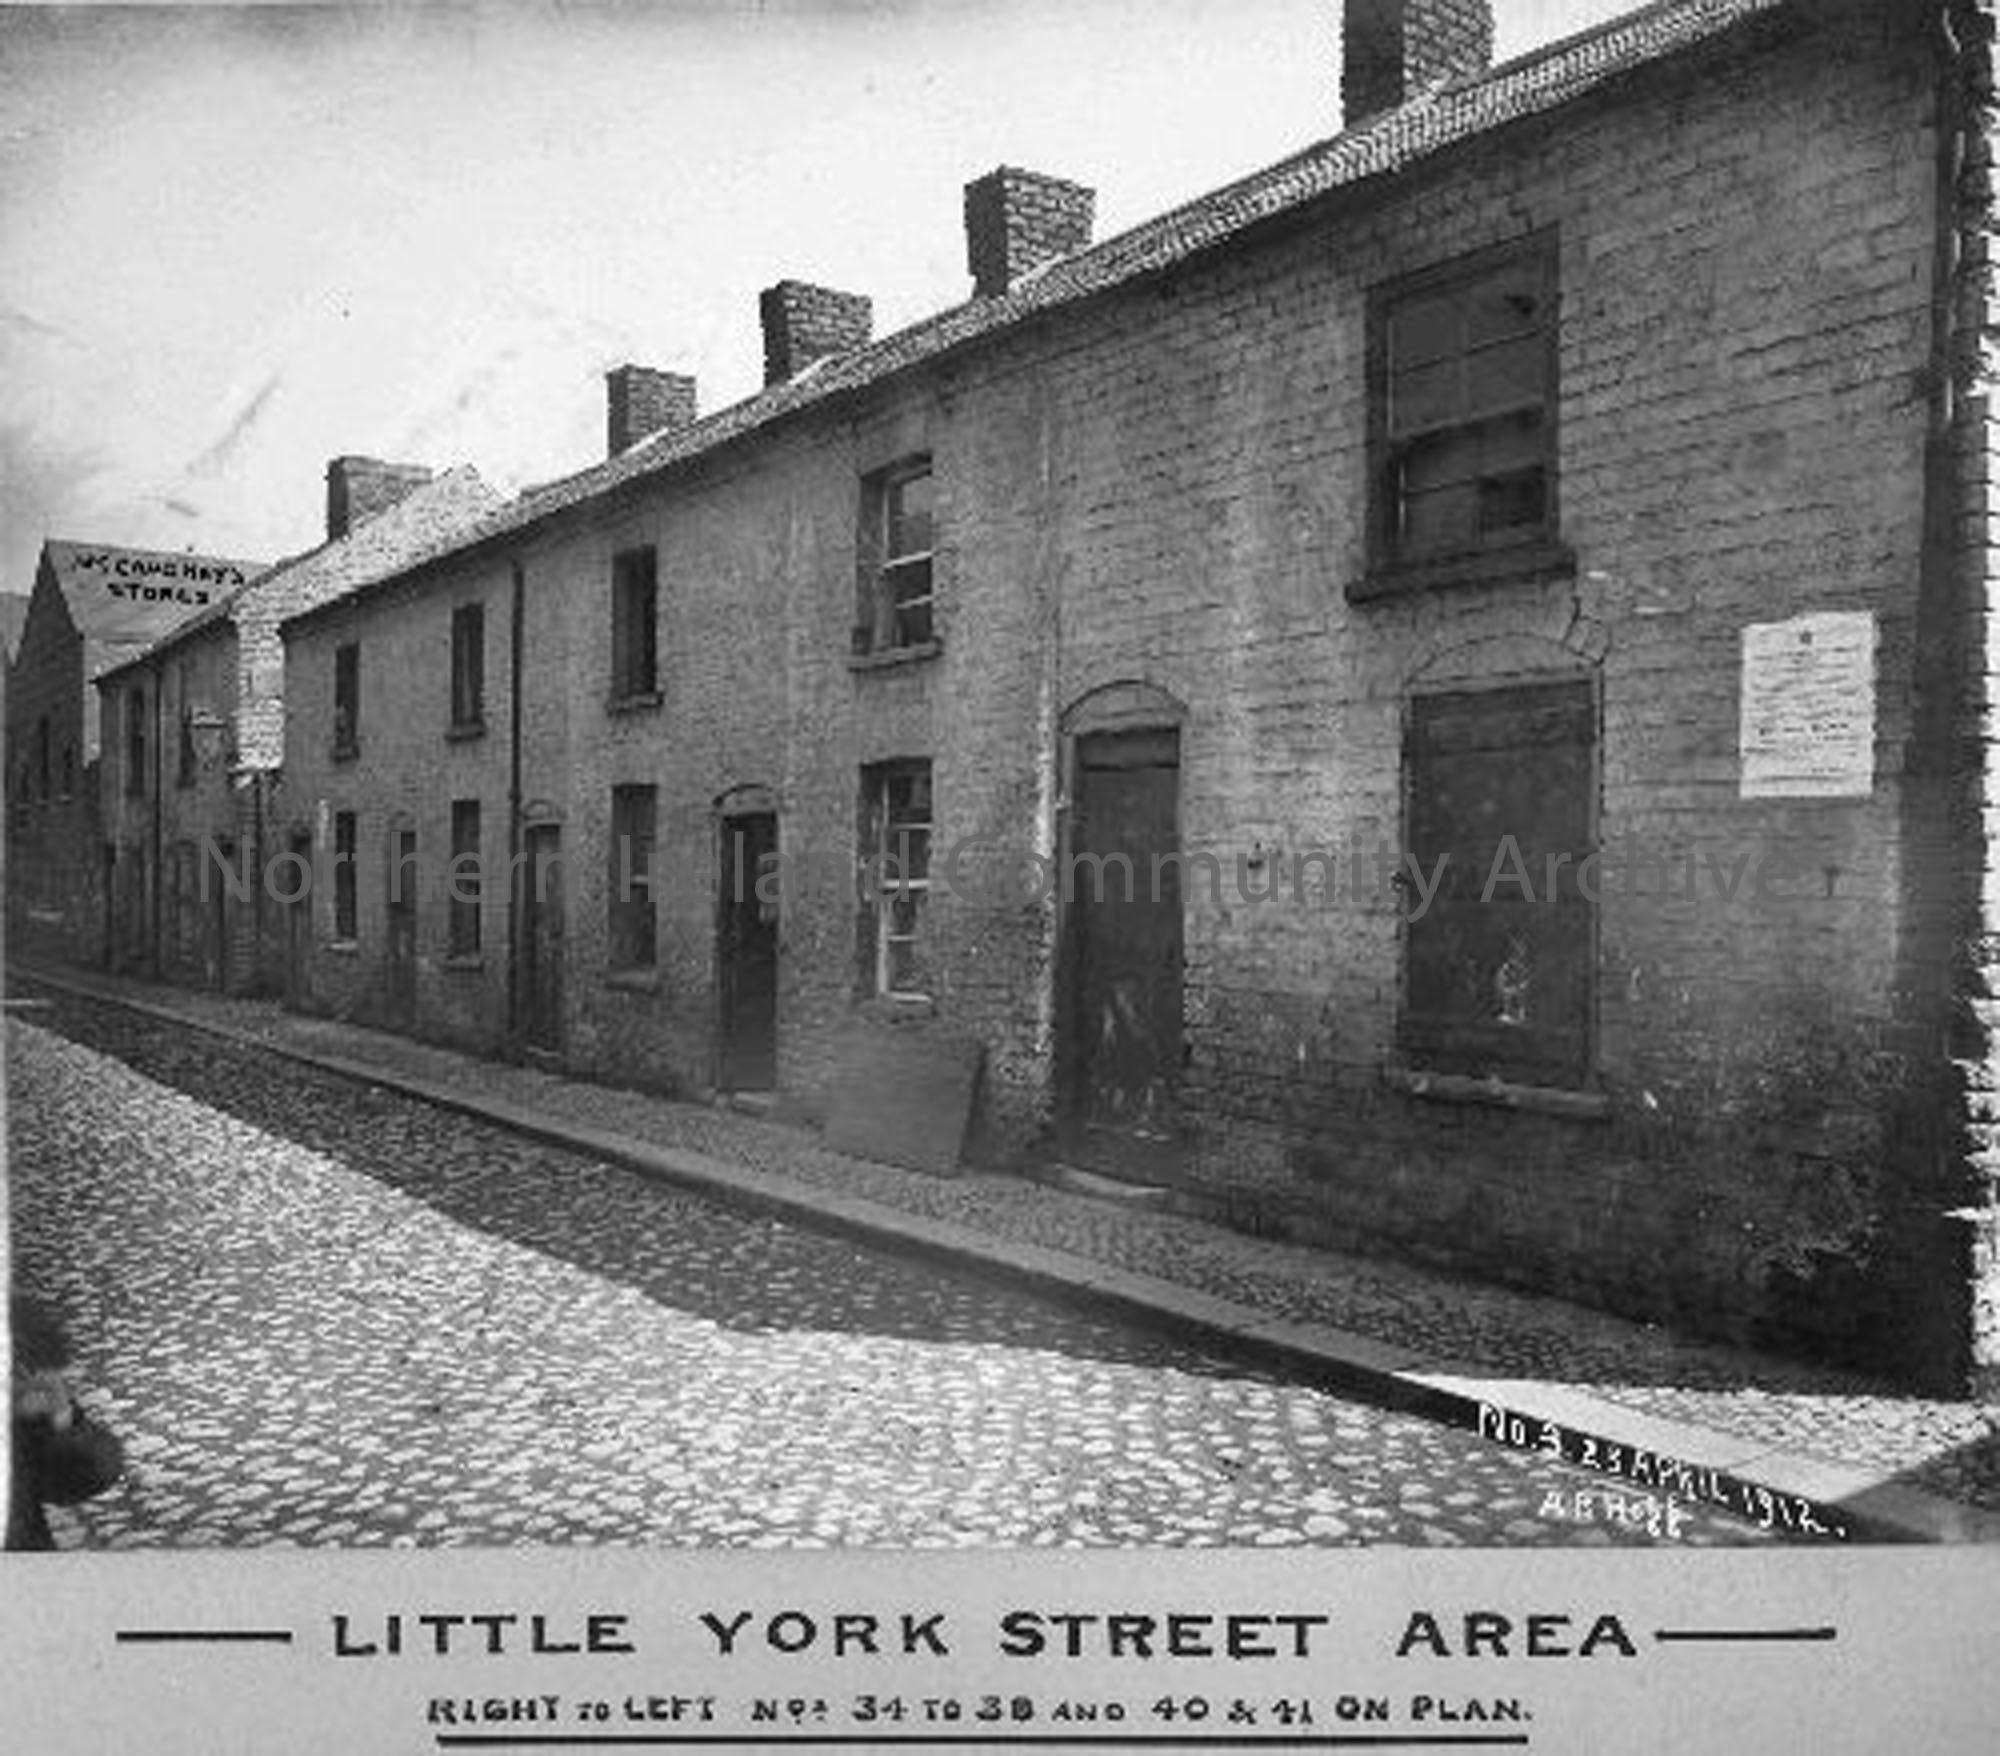 Little York Street Area (2330)